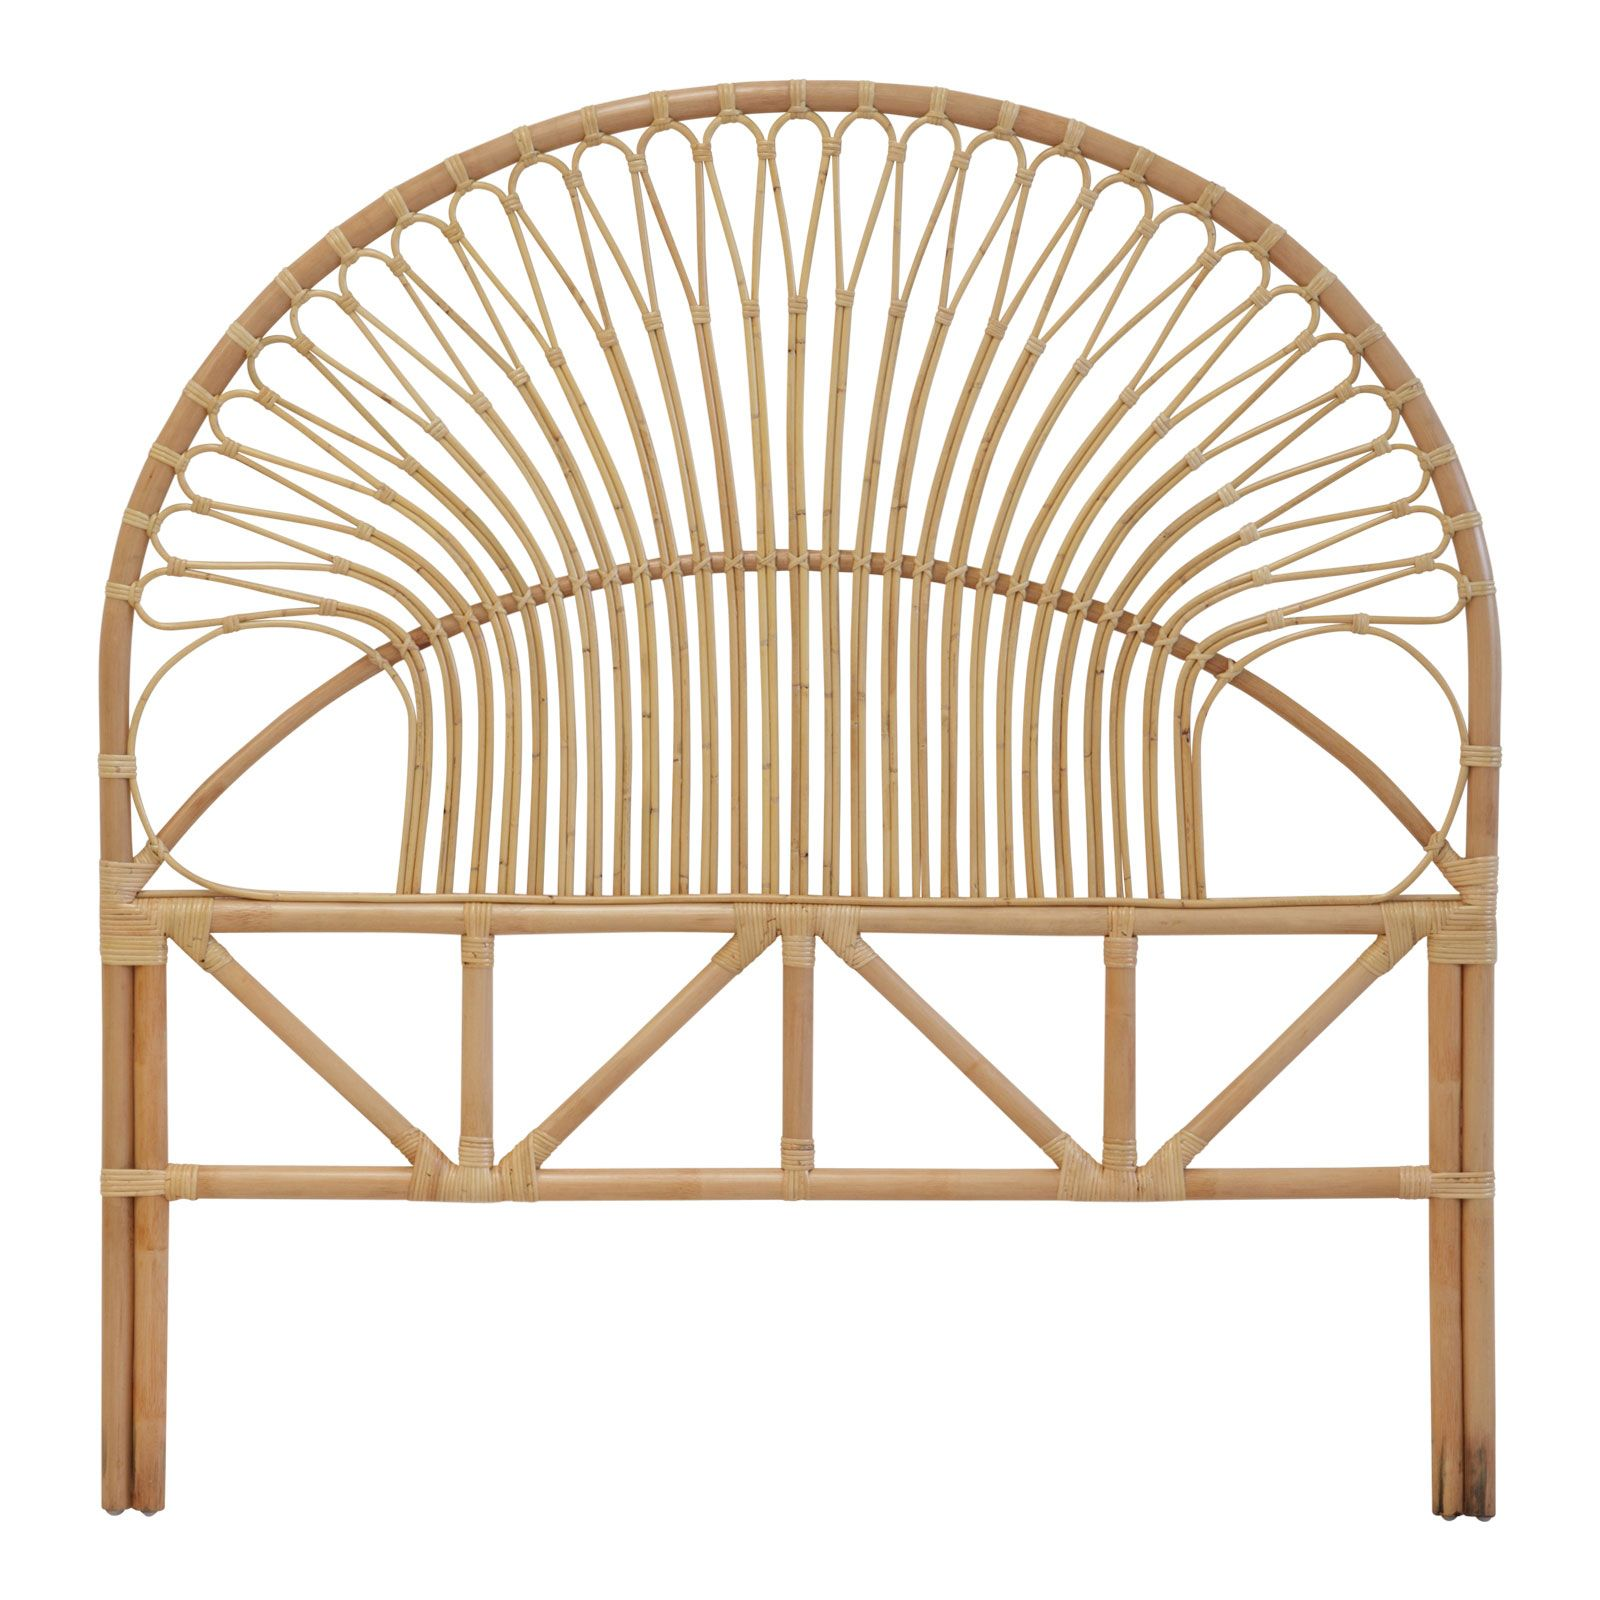 399 king Rattan headboard, Open frame headboard, Rattan bed